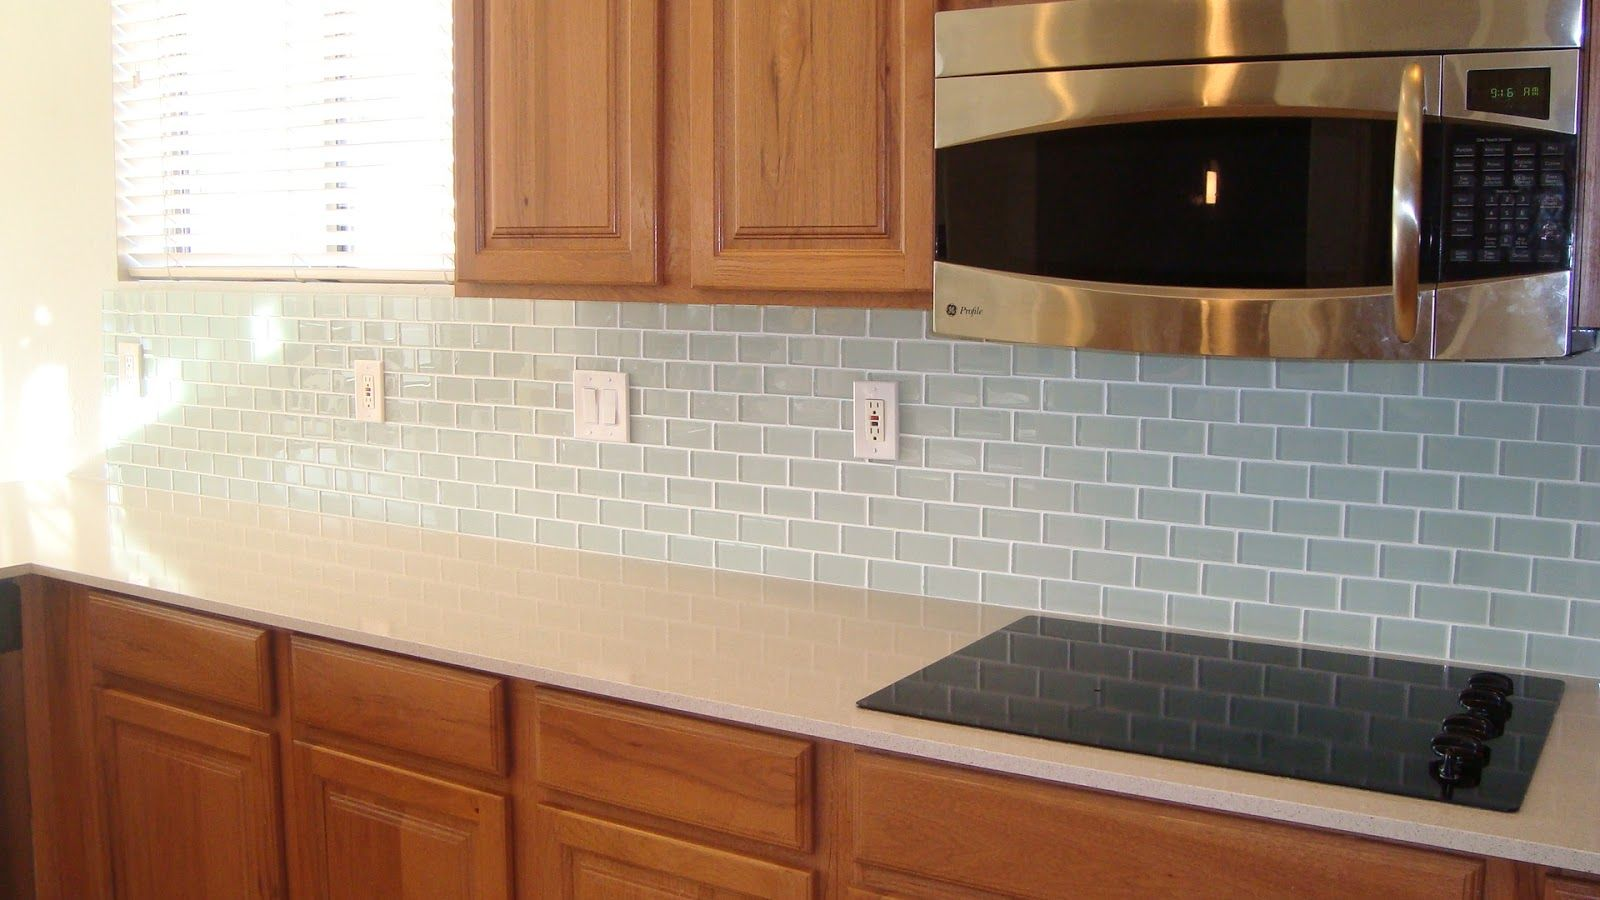 Unique and awesome glass tile backsplash ideas 2231 kitchen exciting kitchen backsplash ideas with glass tile blue offering dailygadgetfo Choice Image